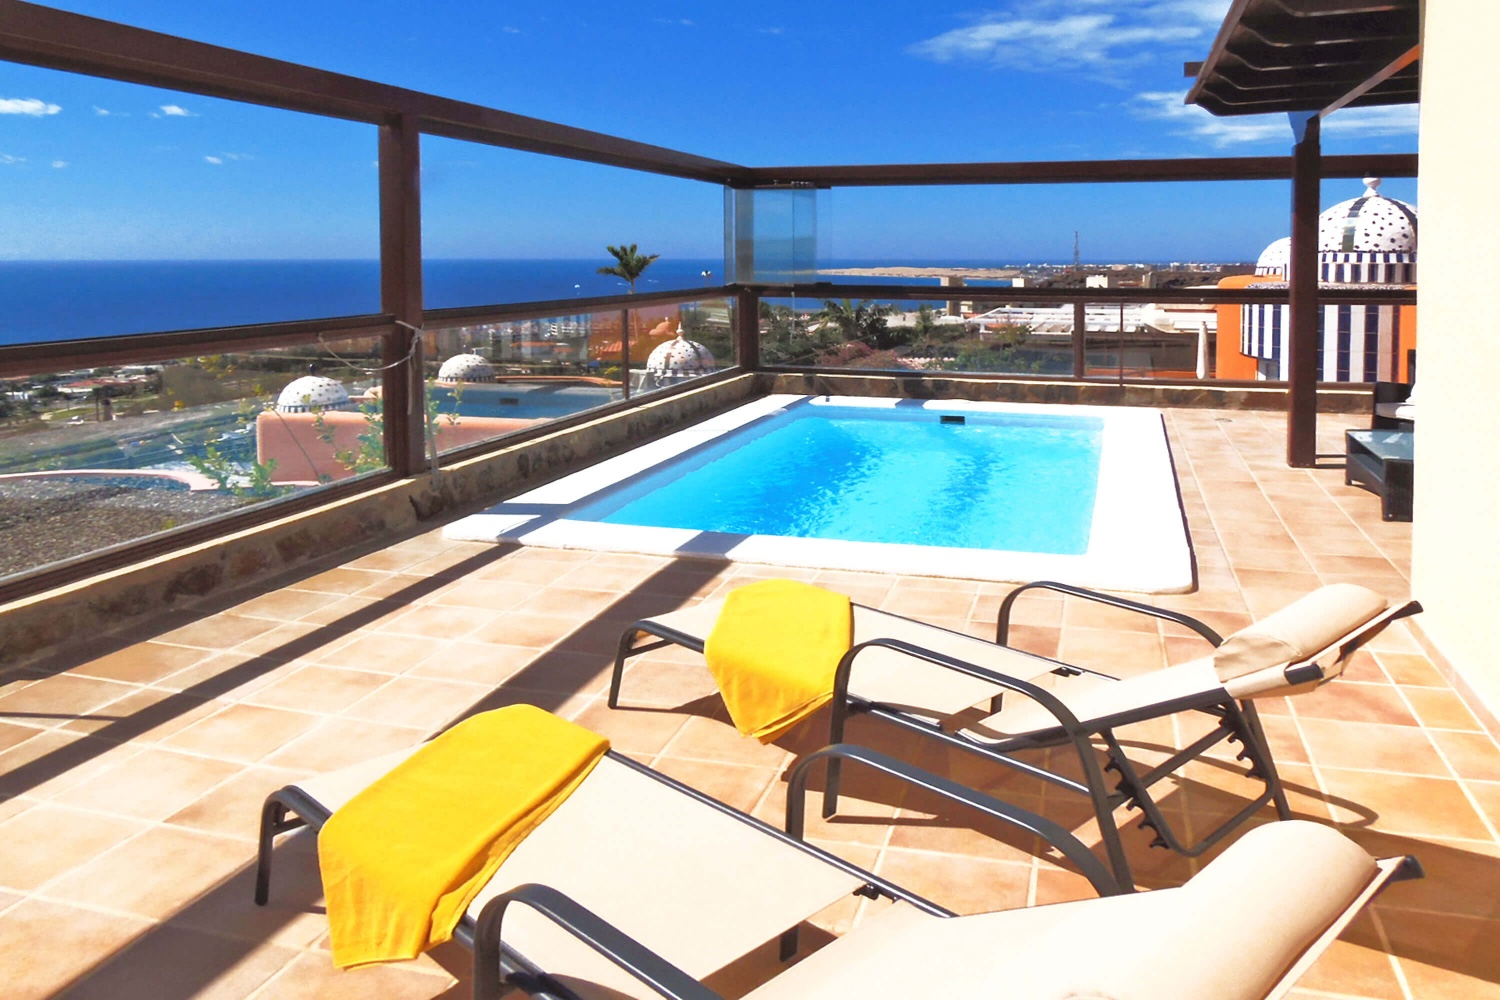 Modern villa with private pool and stunning terrace with panoramic views over the rooftops of San Agustin towards the sea